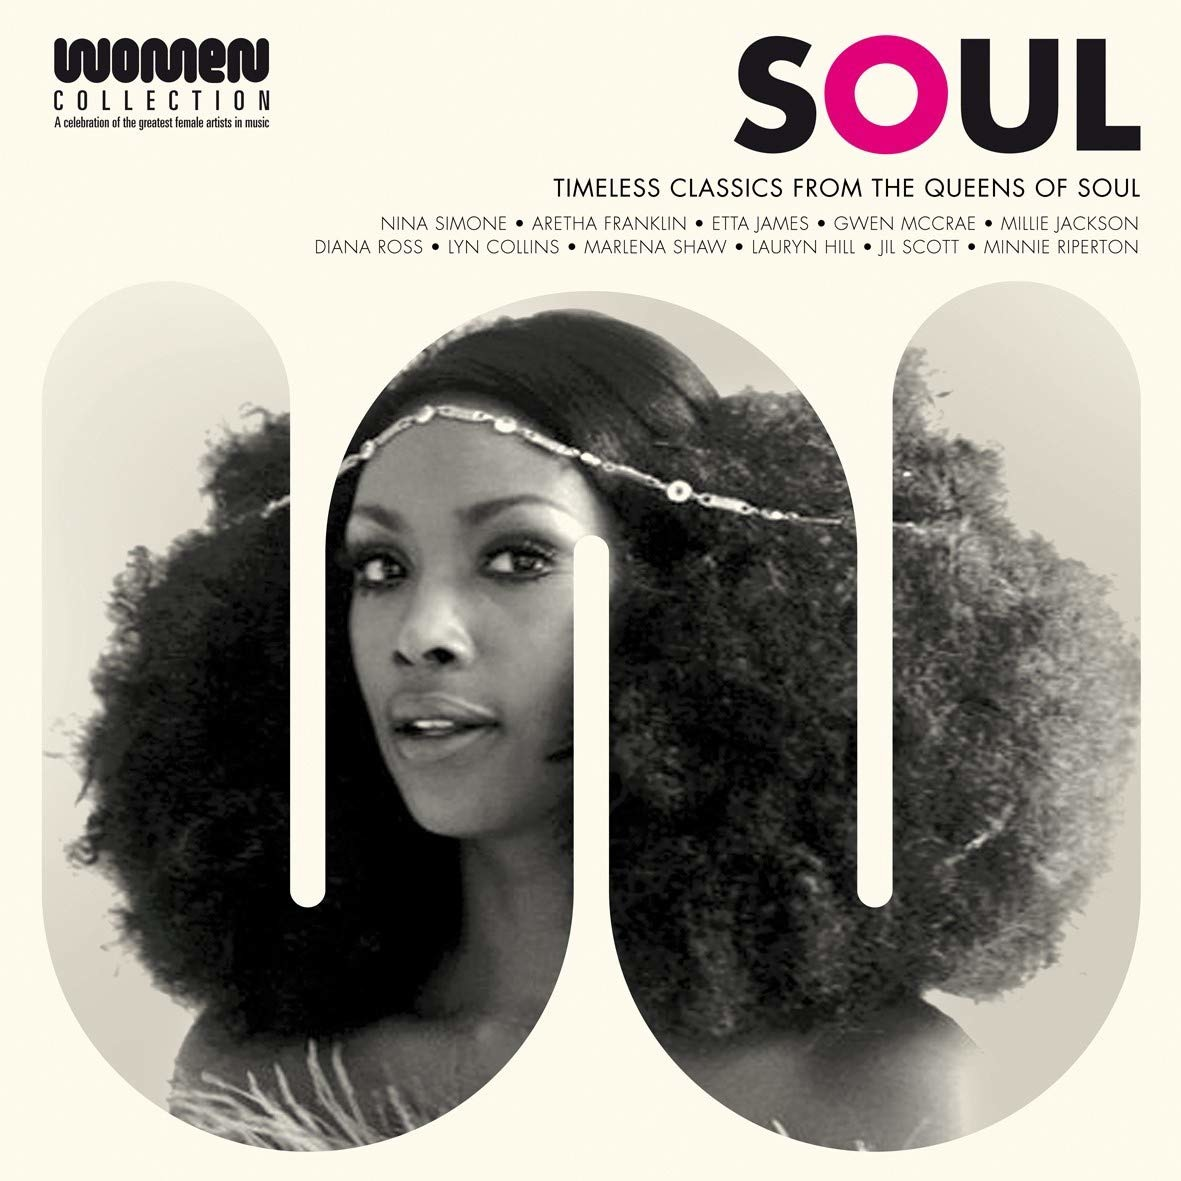 Soul: Timeless Classics from the Queens of Soul - V/A - Musik - BANG - 3596973701169 - 27/9-2019